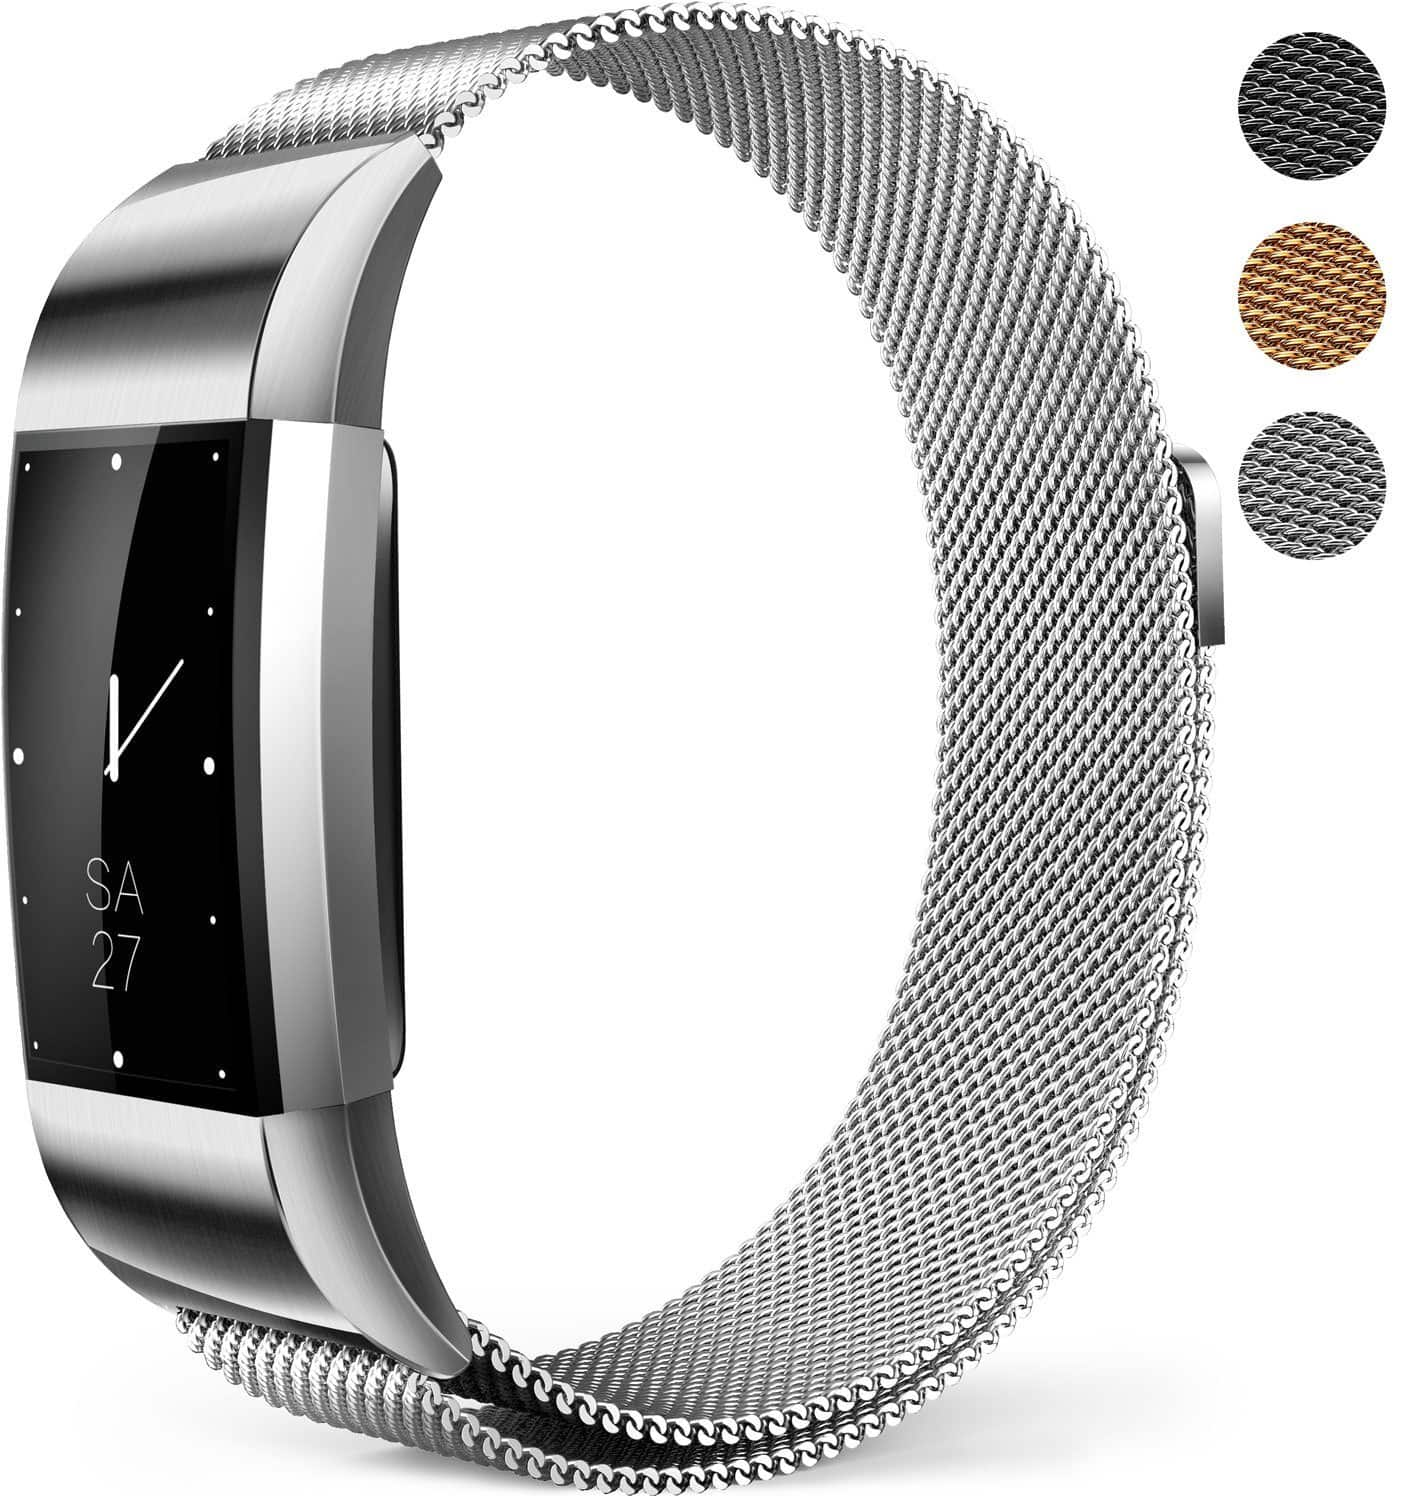 XINKEJI Fitbit Charge 2 Milanese Mesh Magnetic Loop Wristband (Black, Silver and Gold) from $5.99 + F/S with Prime